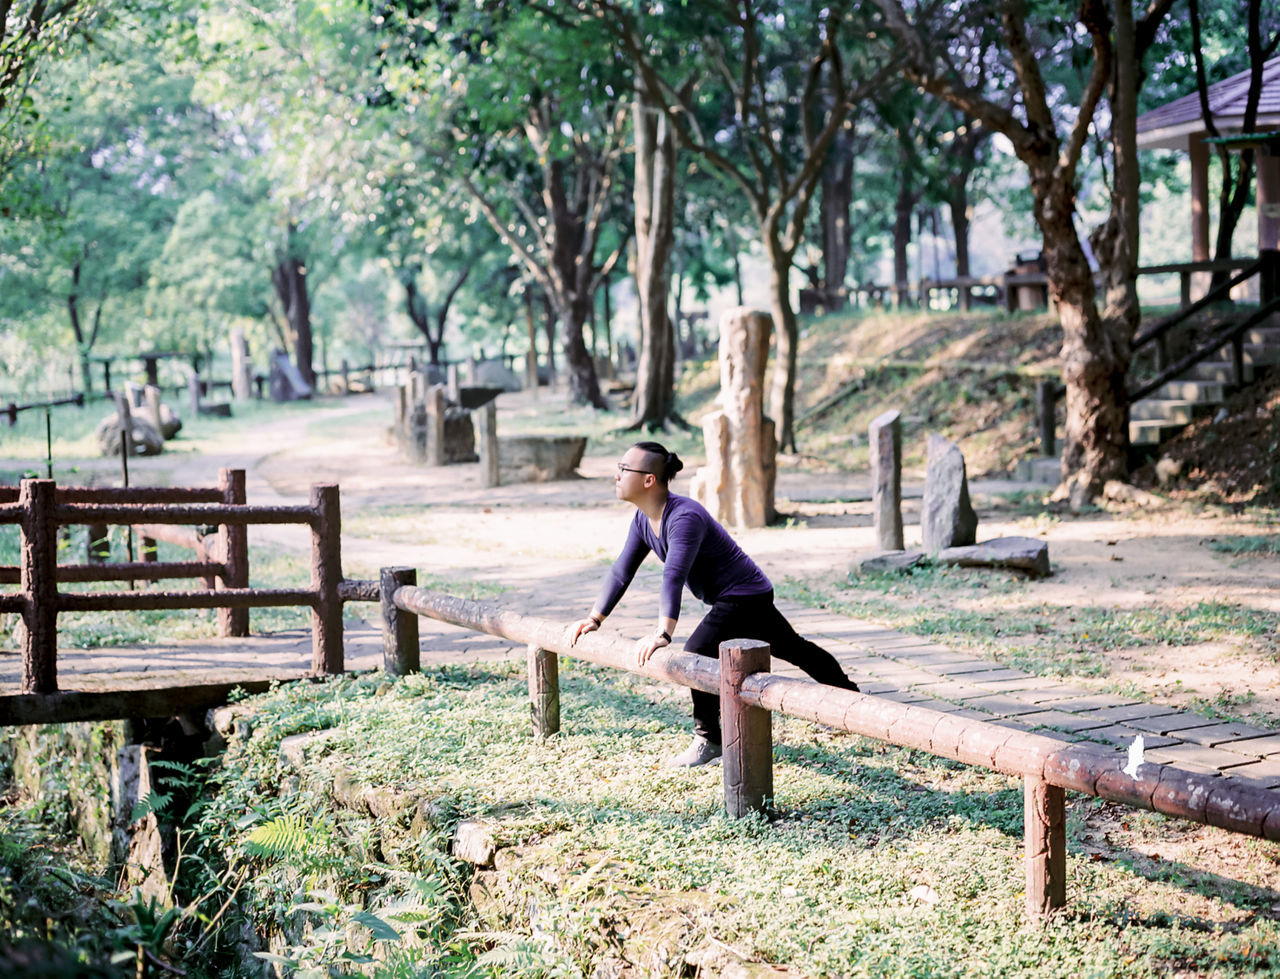 Alone Autum Swinger Day Escapism Fence Field Forest Getting Away From It All Grass Grassy Green Color Hanging Out Landscape Portrait Railing Togetherness Tree Tree Trunk Weekend Activities Wood Wood - Material Wooden WoodLand Yama